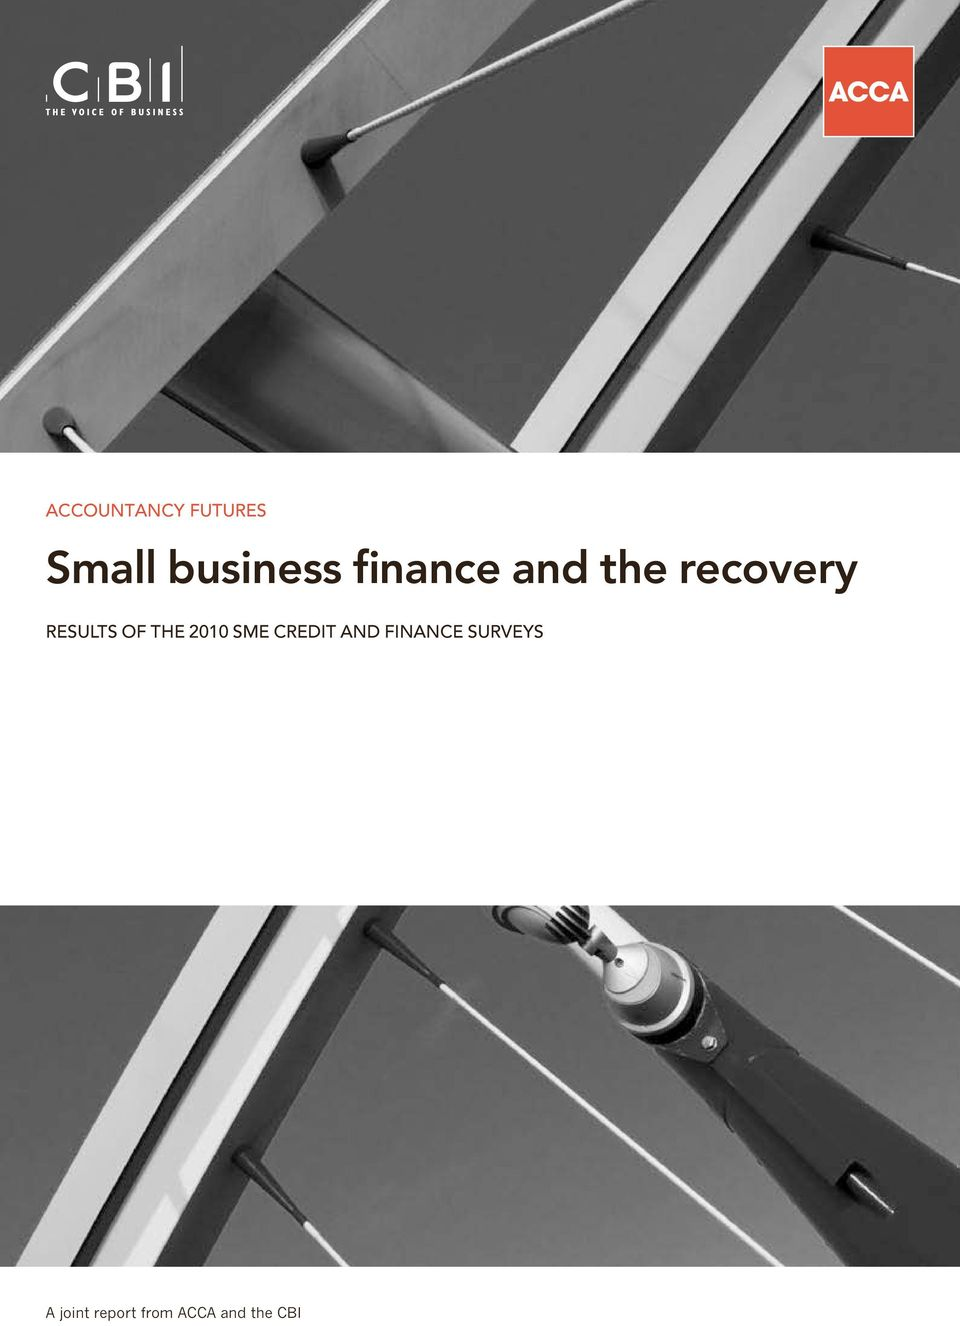 the 2010 SME credit and finance